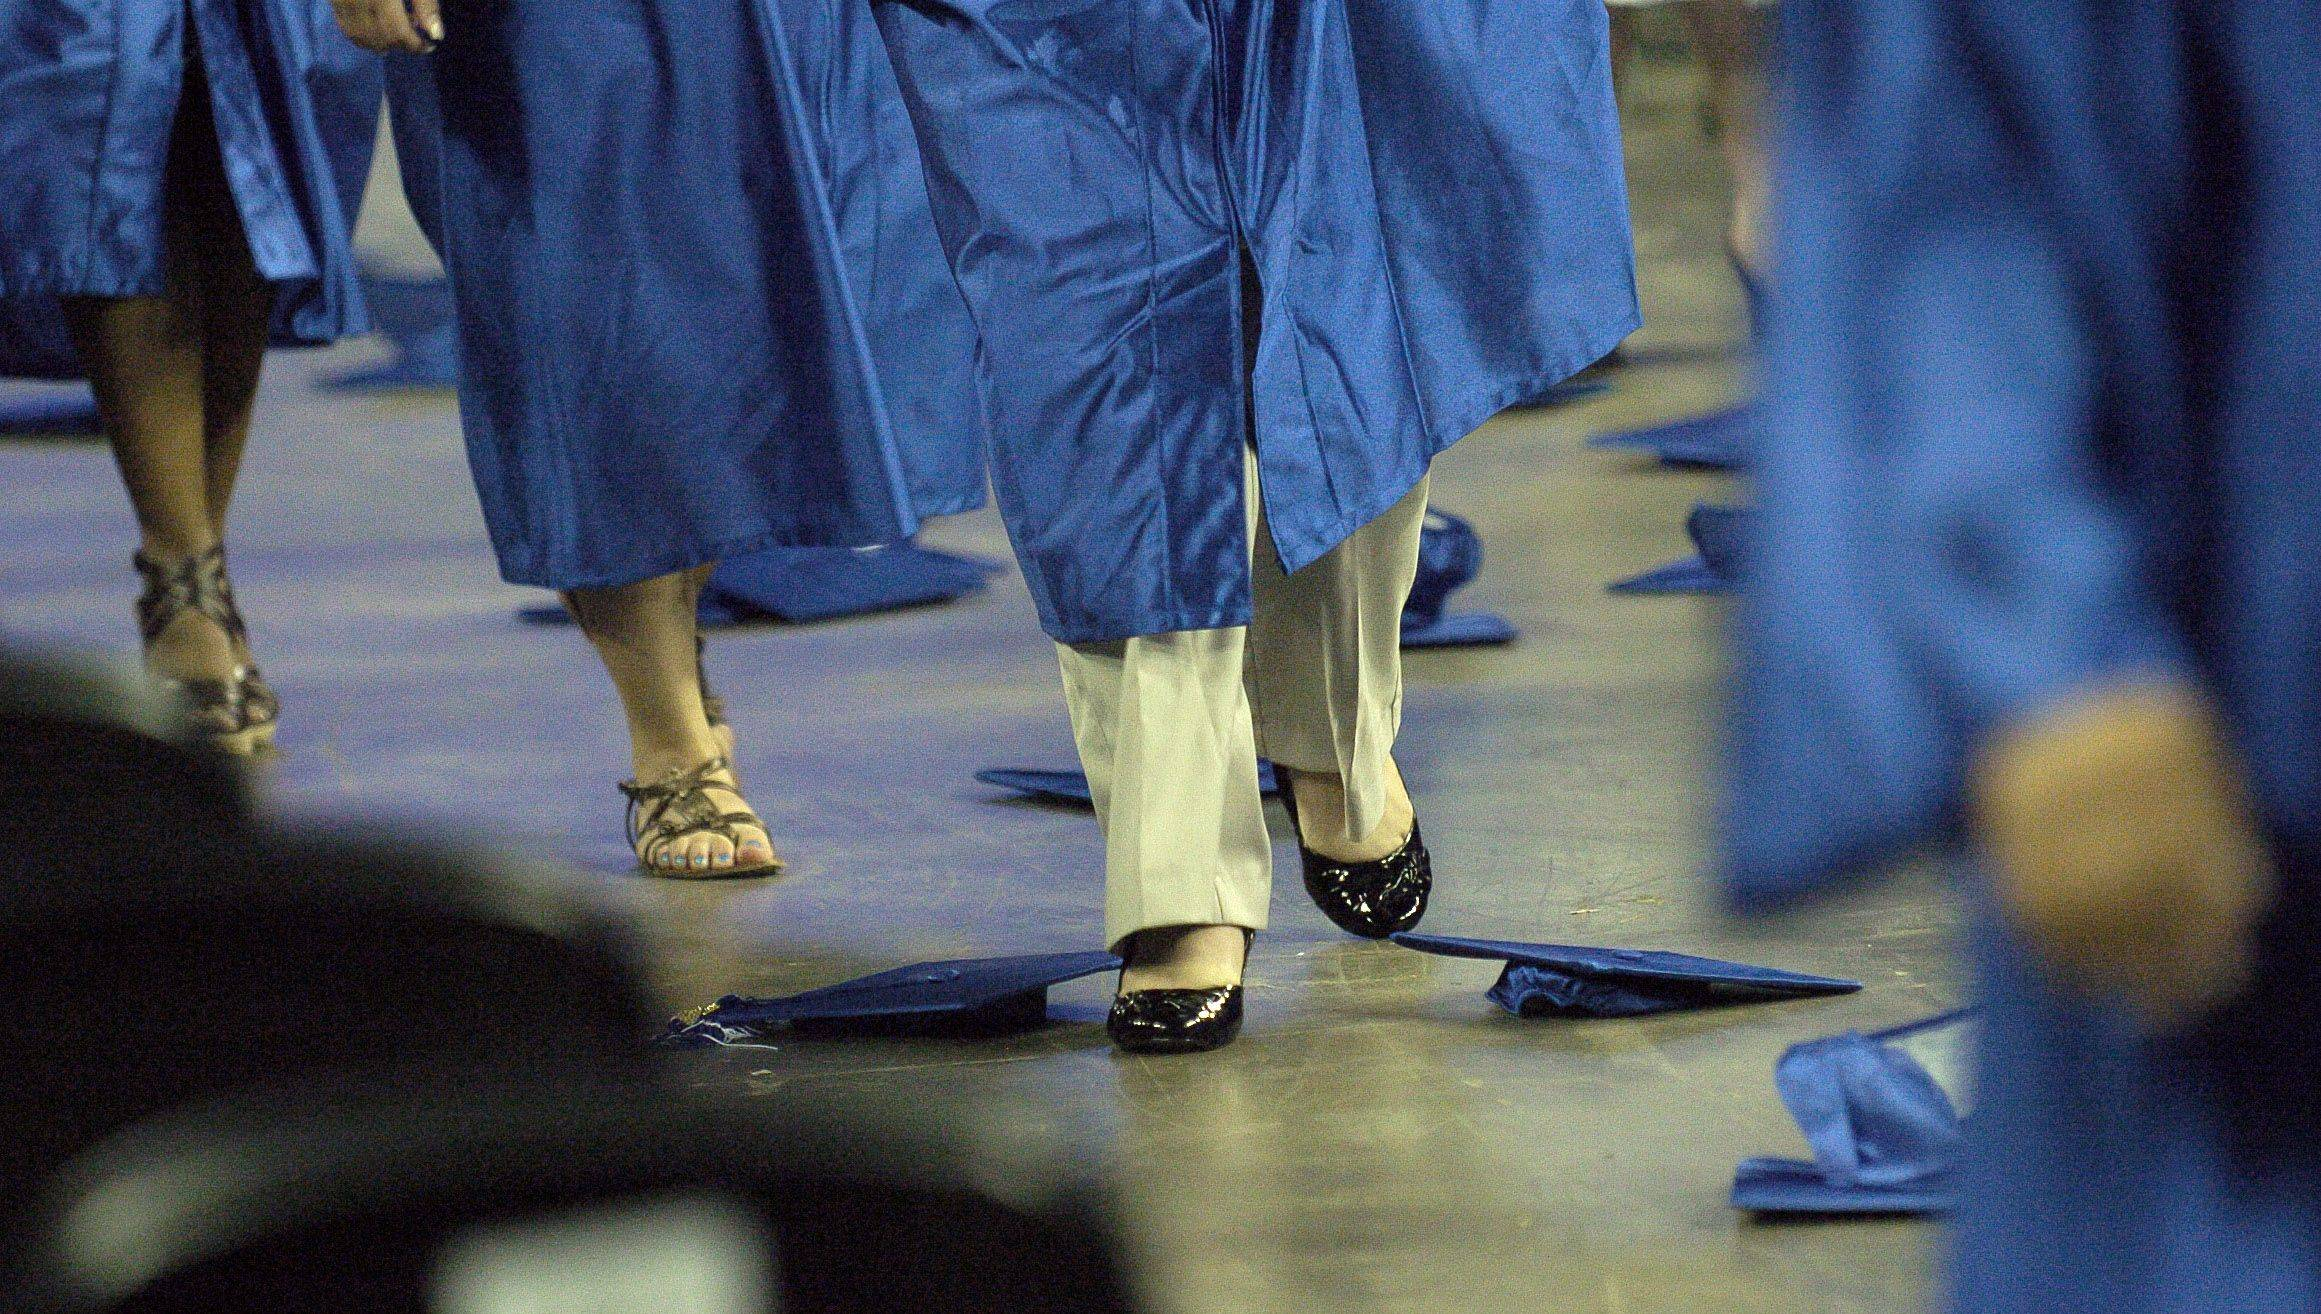 Larkin High School graduates steer their way through discarded caps as they exit the floor after their commencement ceremony at the Sears Centre in Hoffman Estates on Saturday.